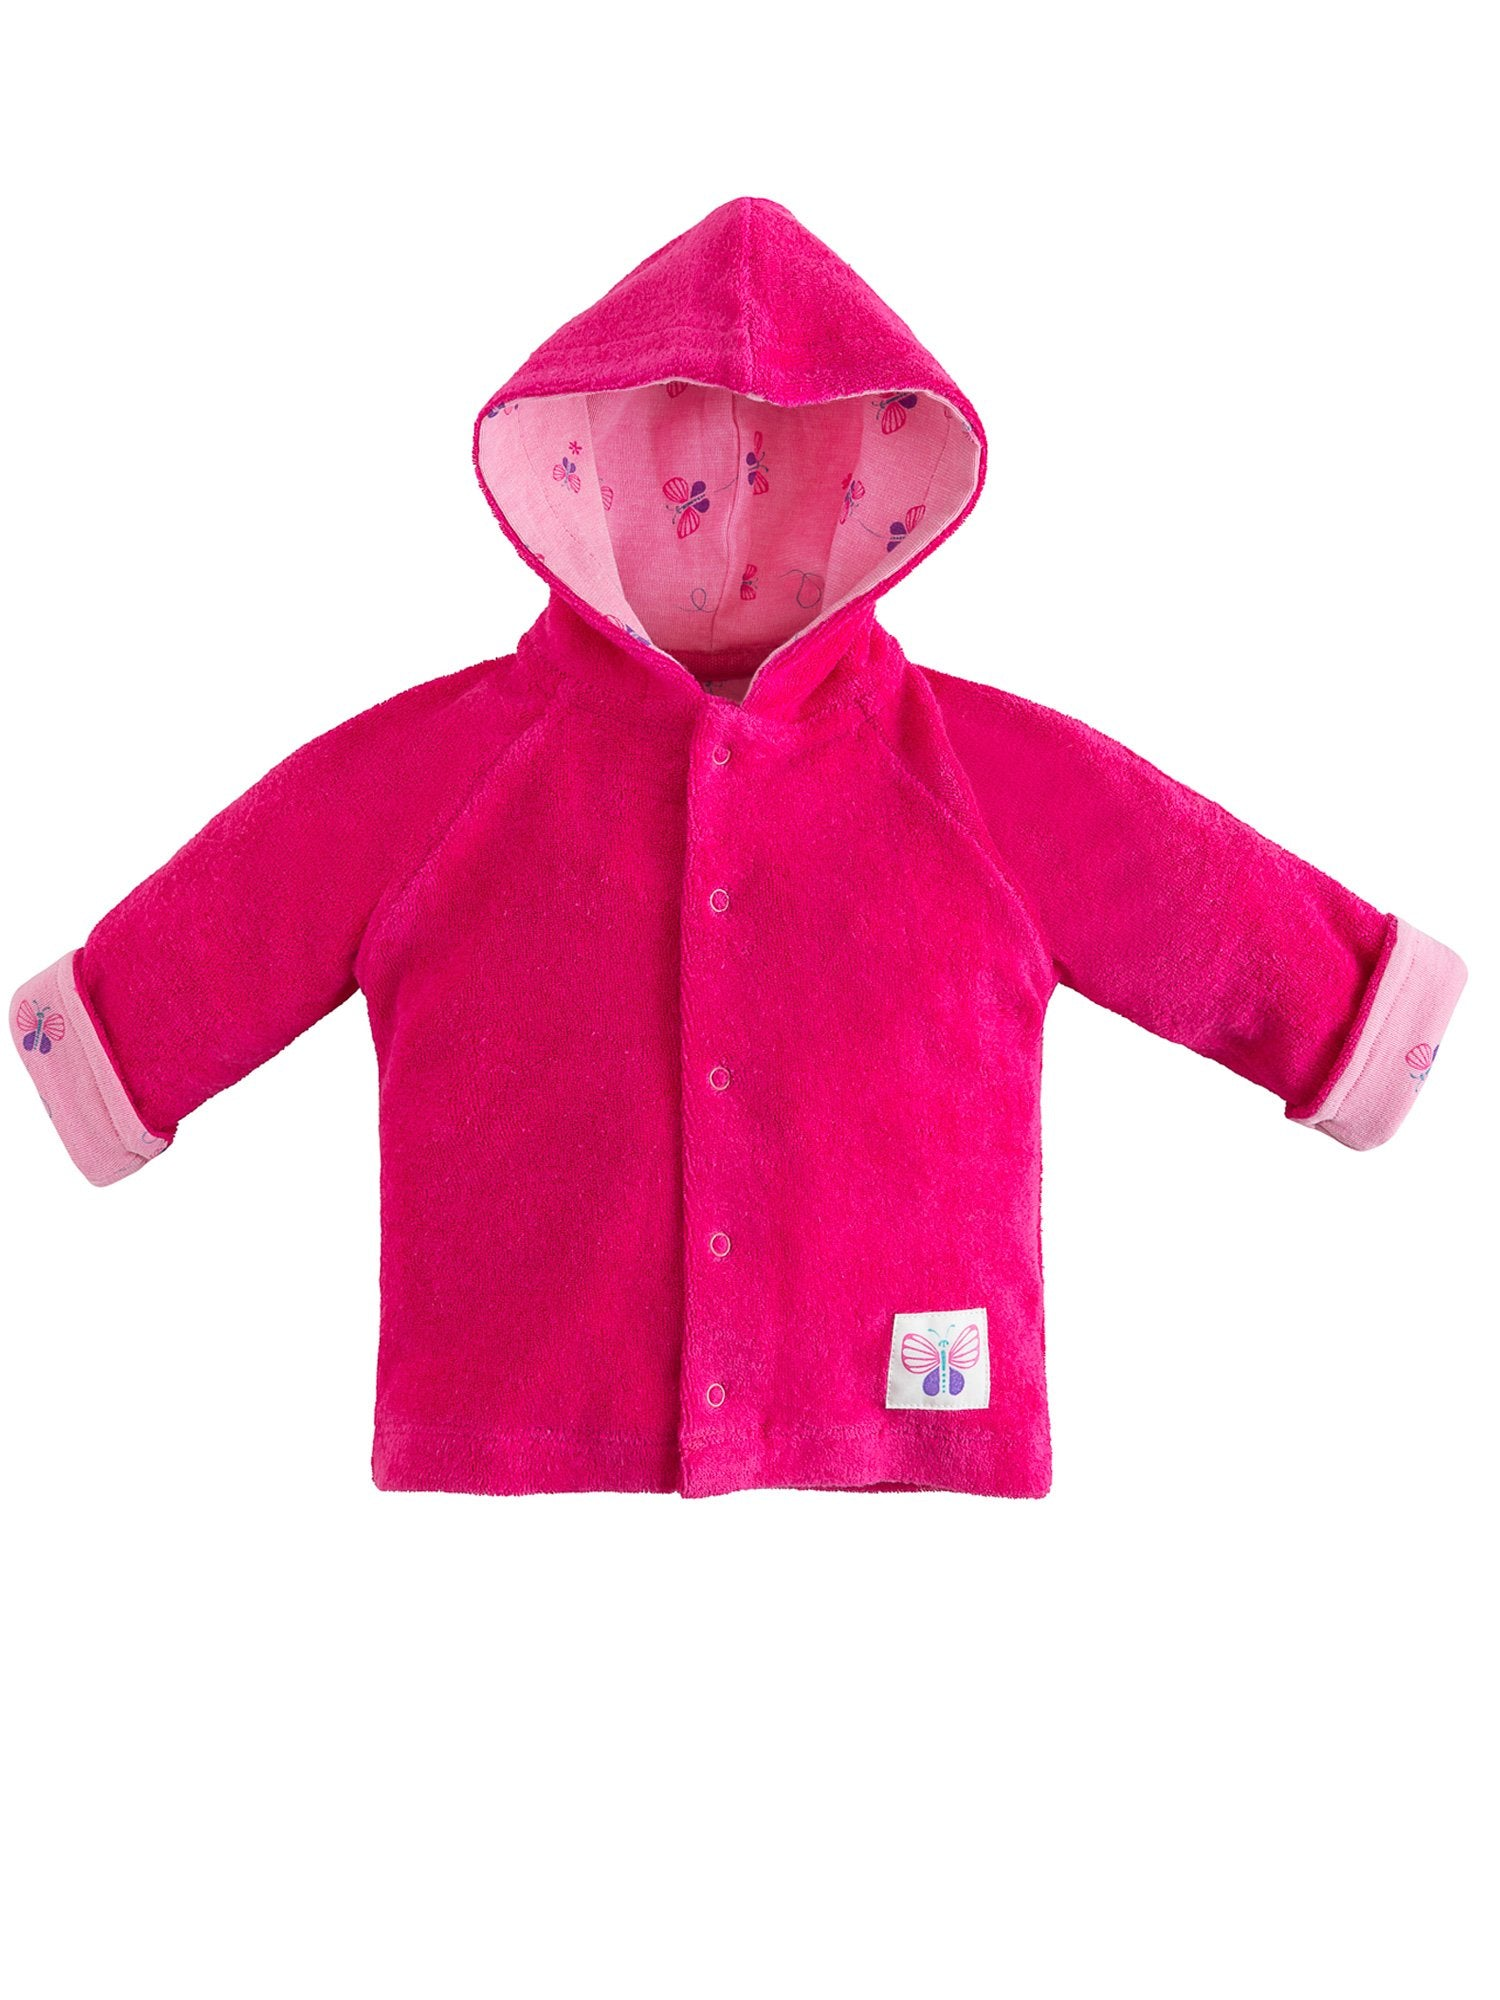 7e10764b5 Organic Cotton Baby Girl Snap Front Hoodie - Bella Butterfly – Under the  Nile